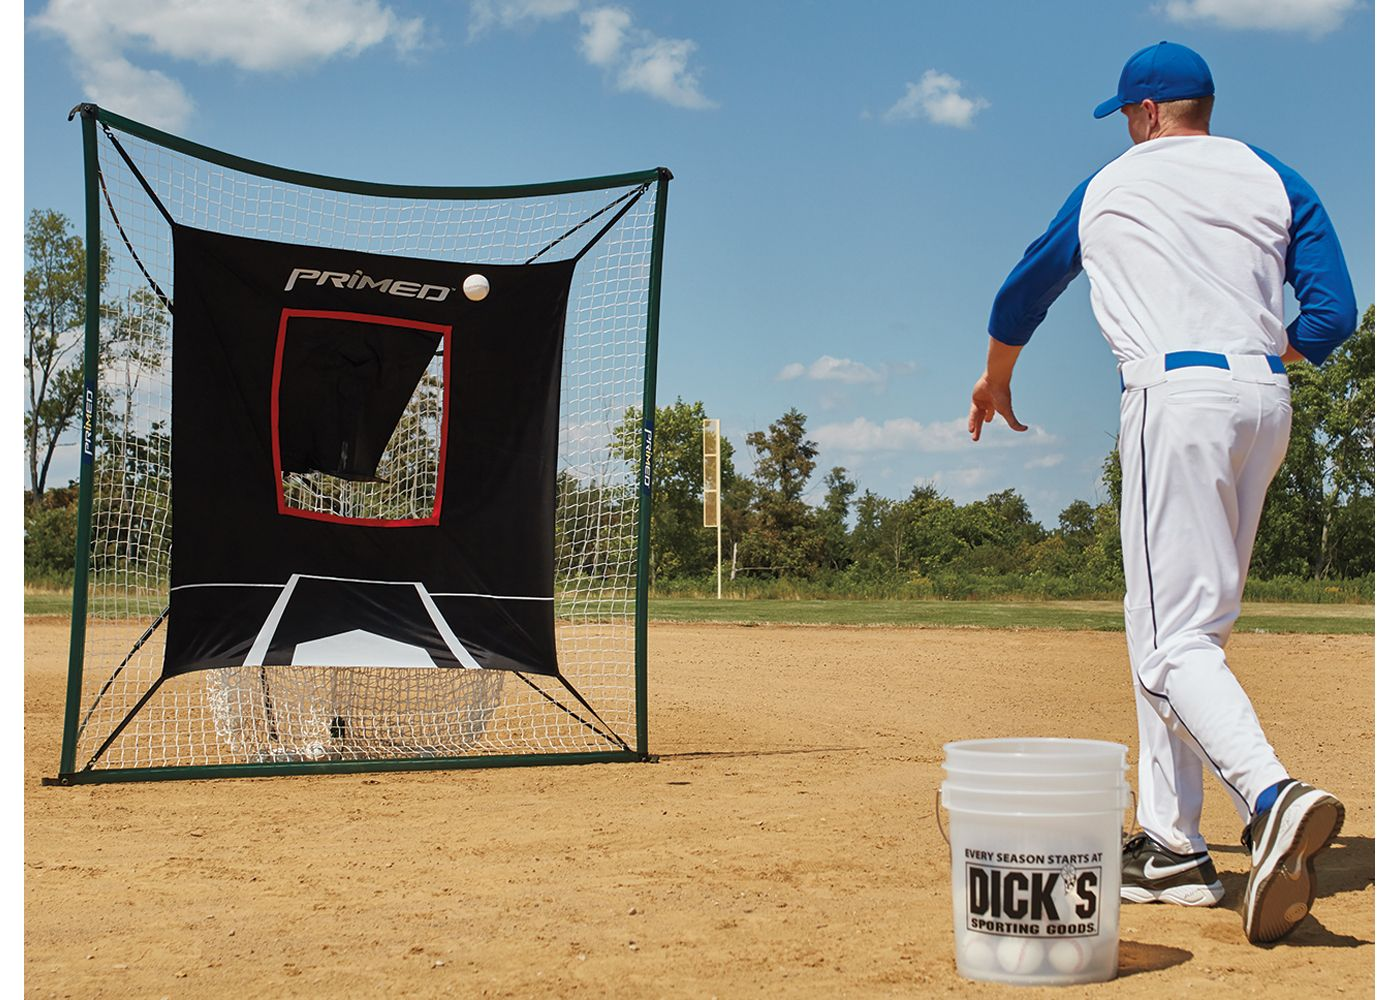 PRIMED 7' Instant Net and Pitching Trainer